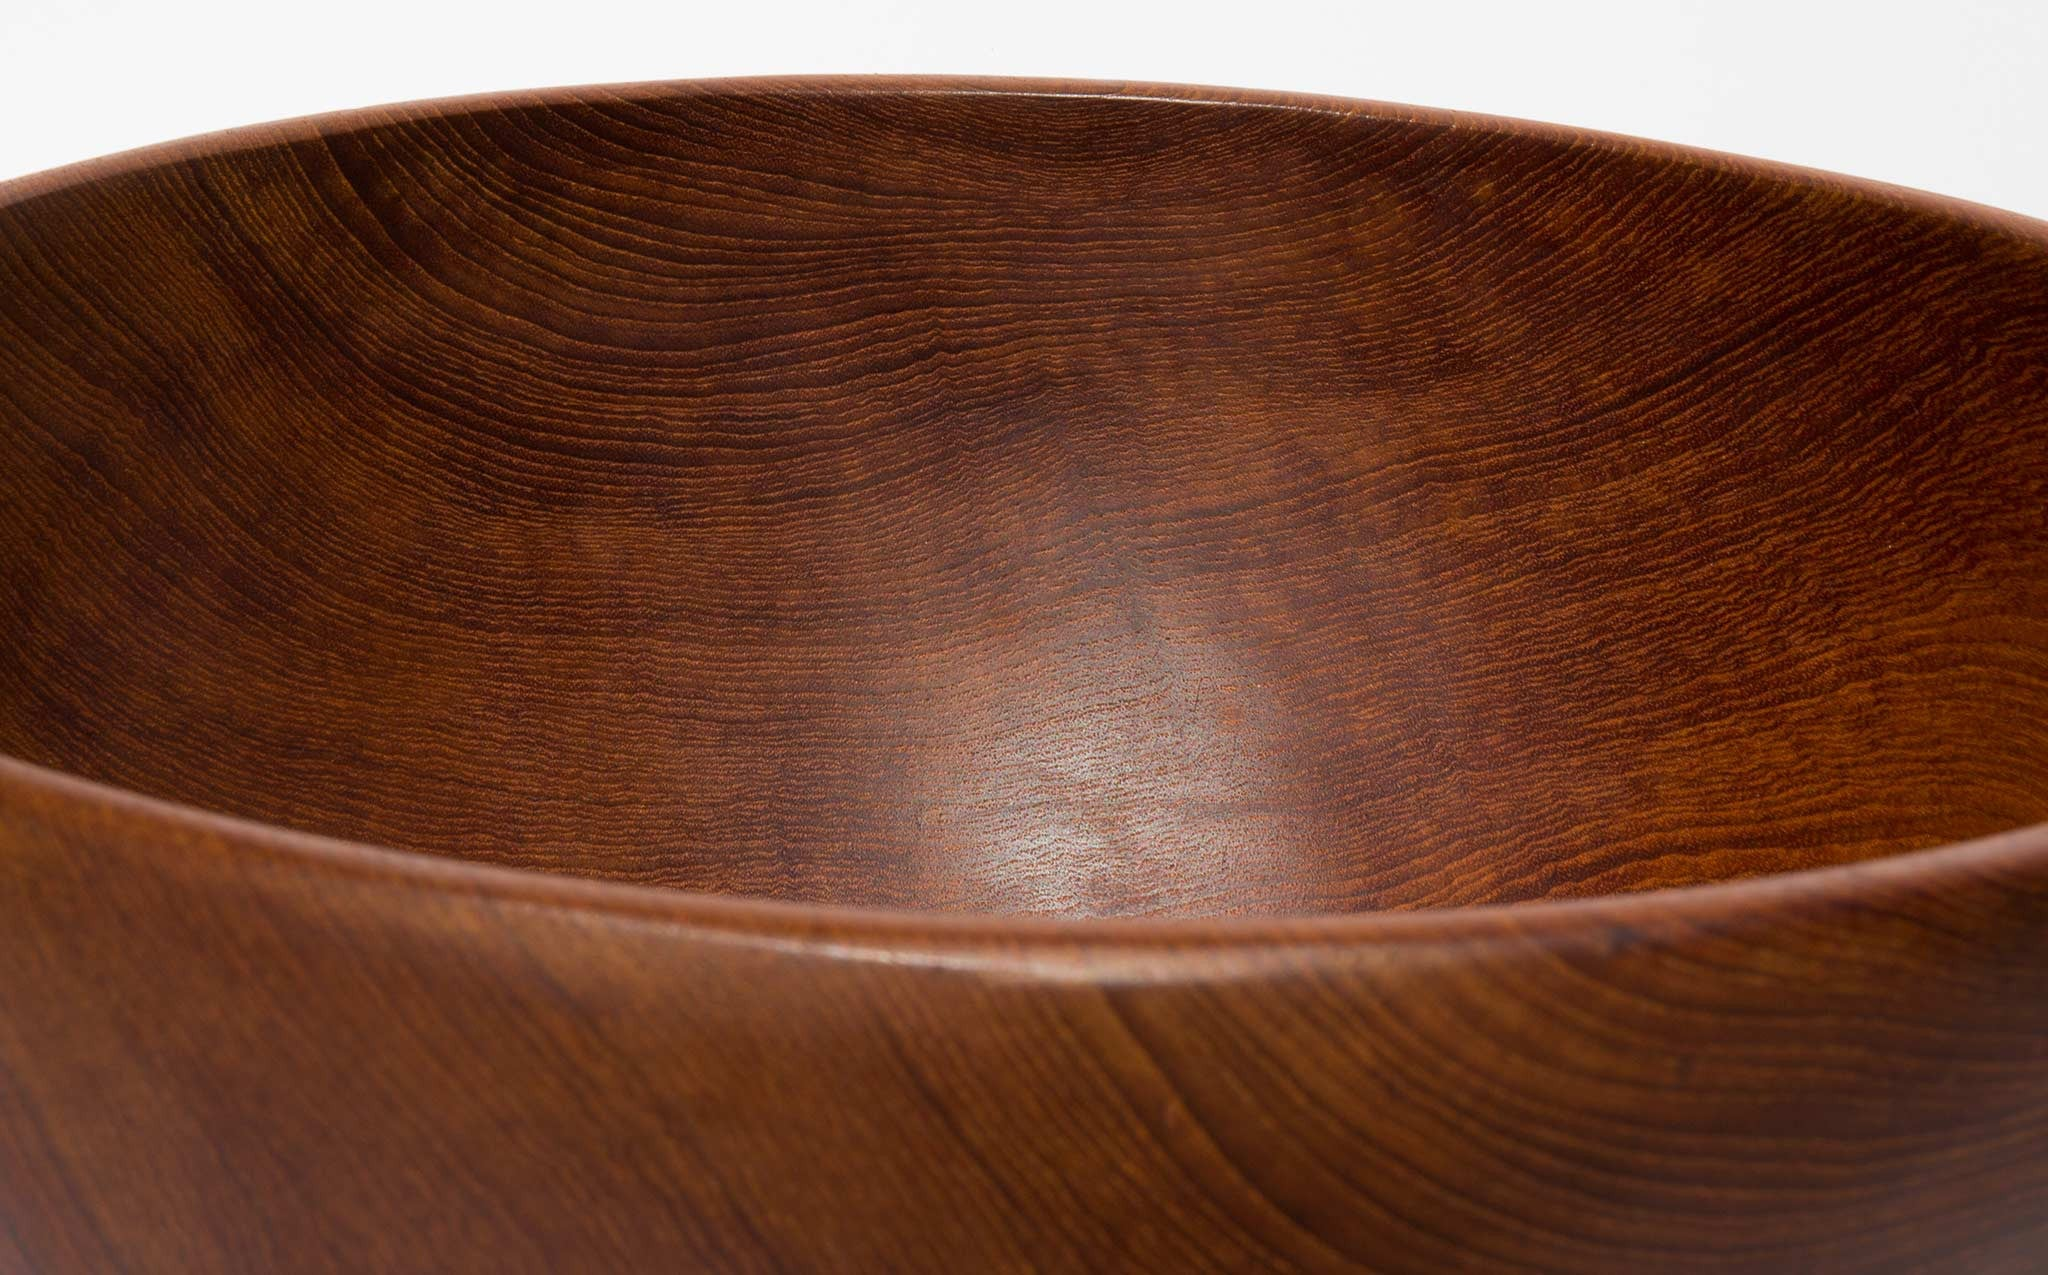 Oversized Solid Teak Bowl